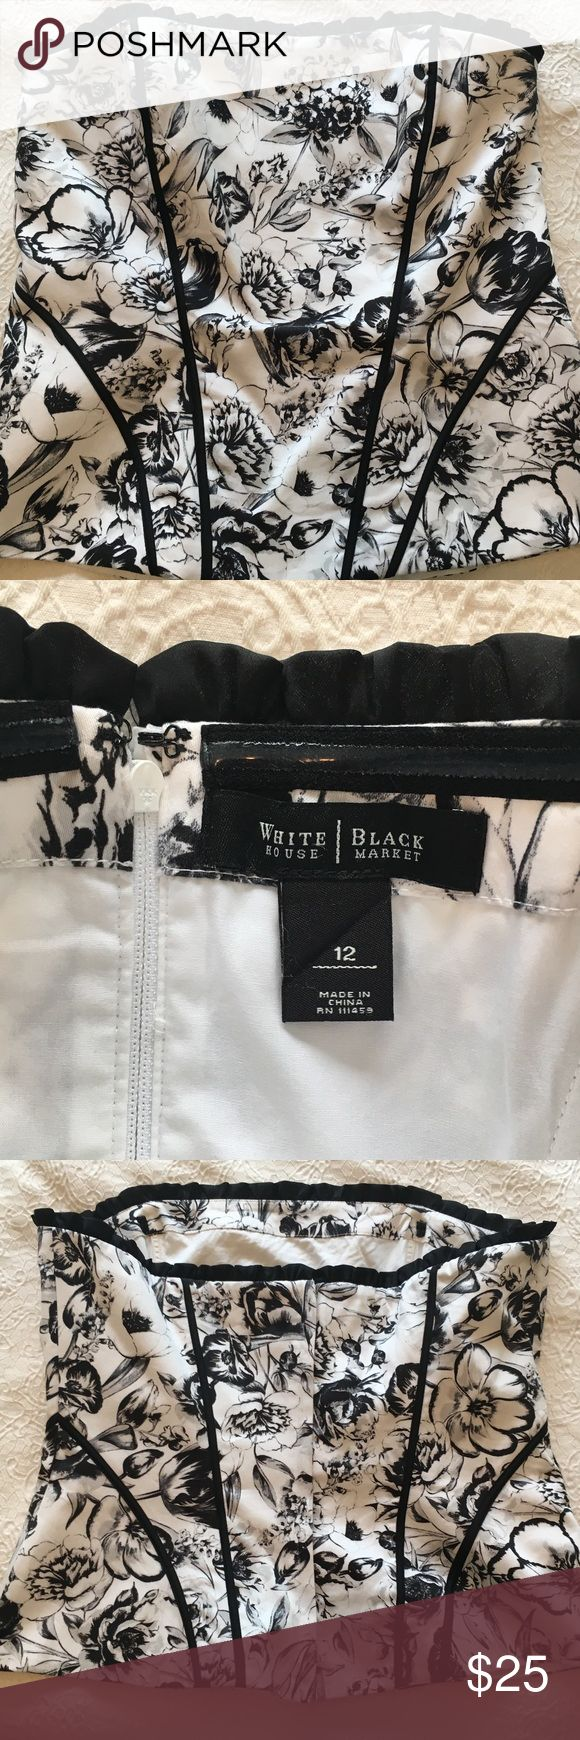 WHBM Strapless Corset Bustier 12 White House Black Market strapless corset bustier in size 12.  Excellent condition. White House Black Market Tops